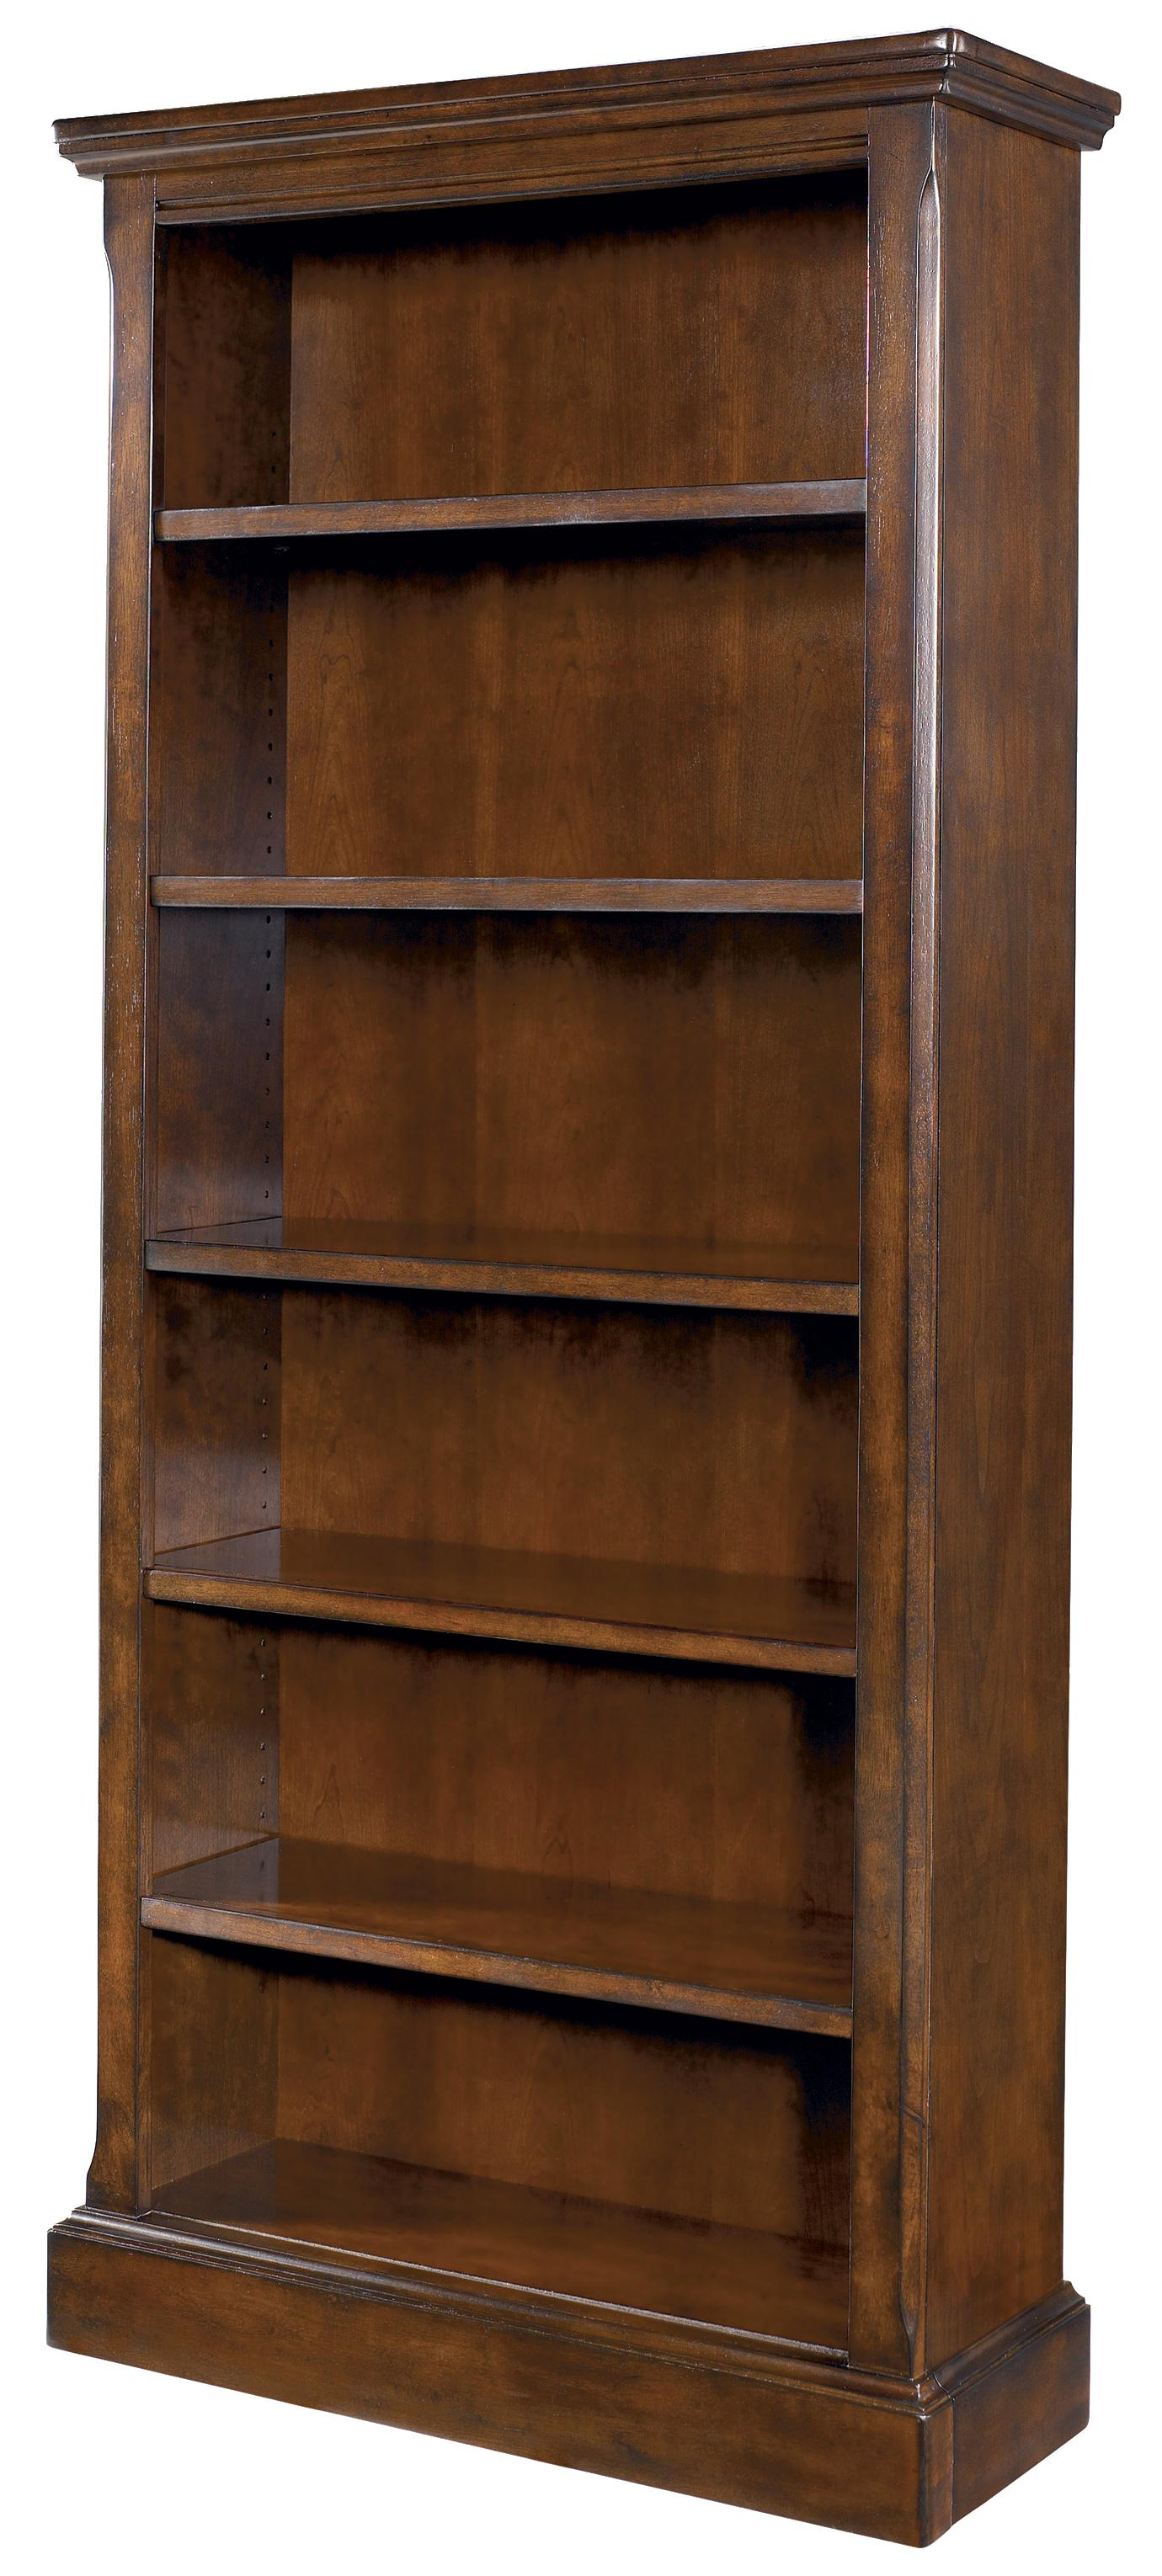 Signature Design by Ashley Porter Large Bookcase - Item Number: H697-17